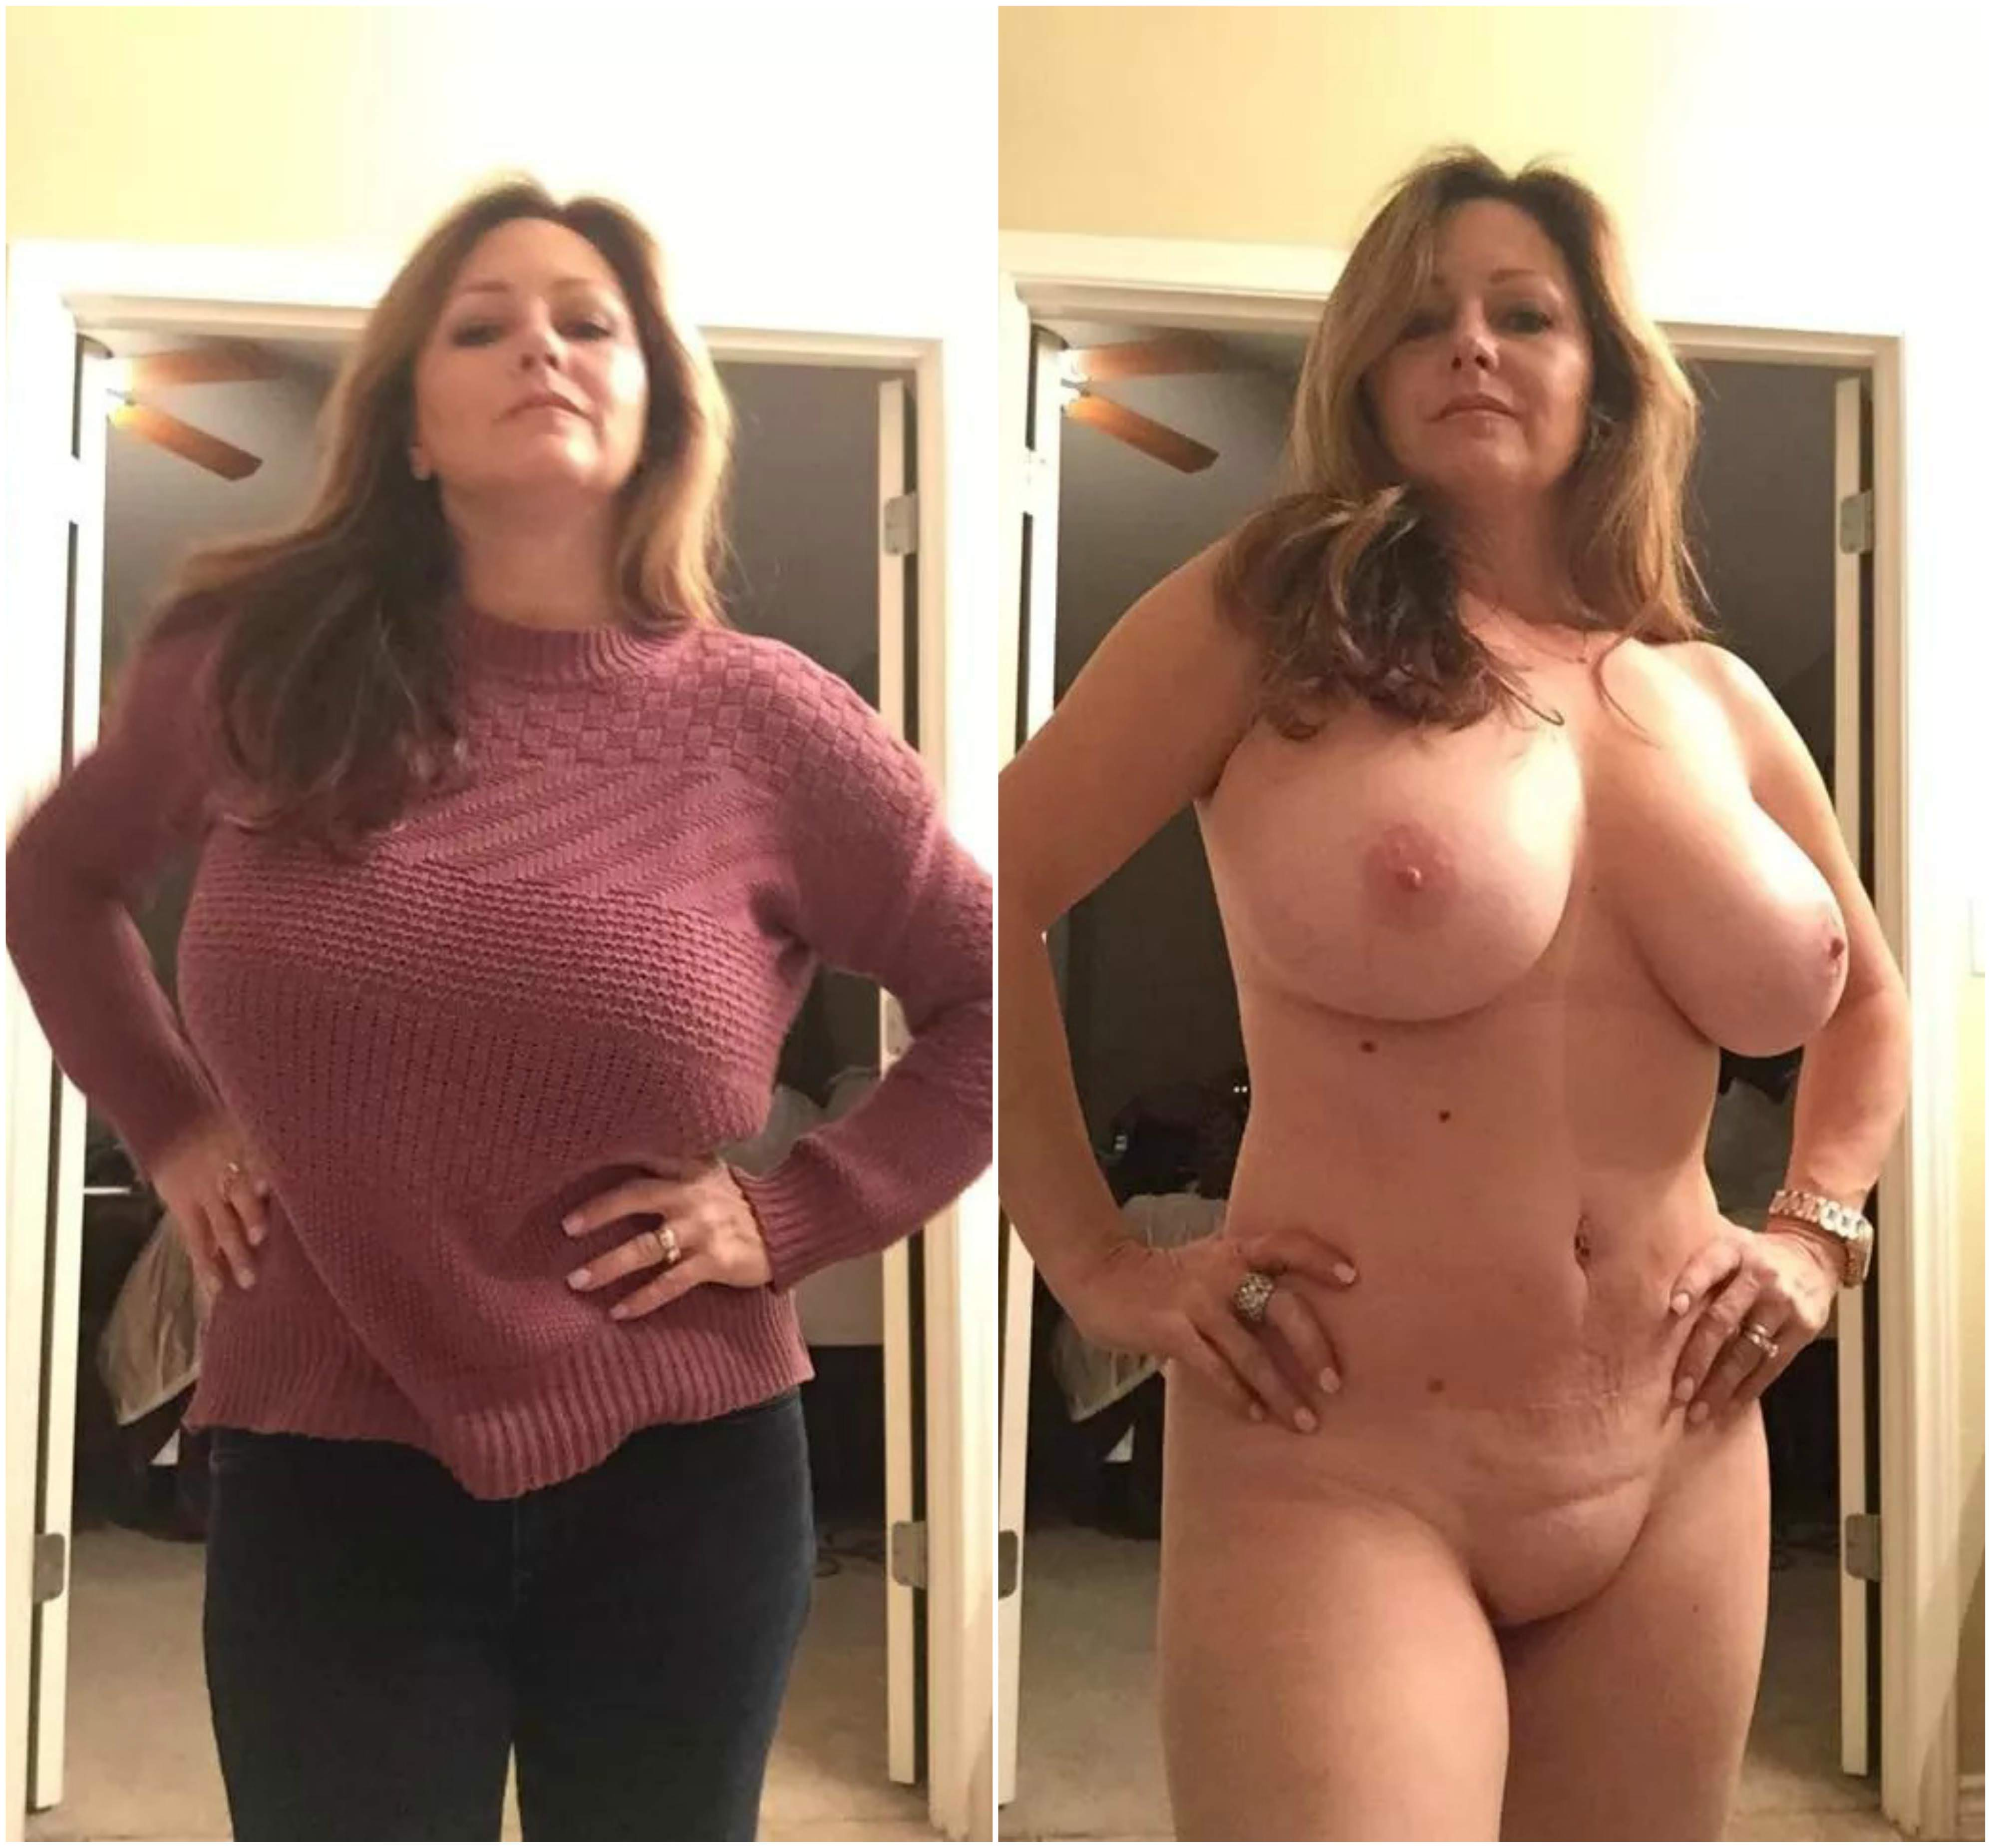 Porn free trailer join now